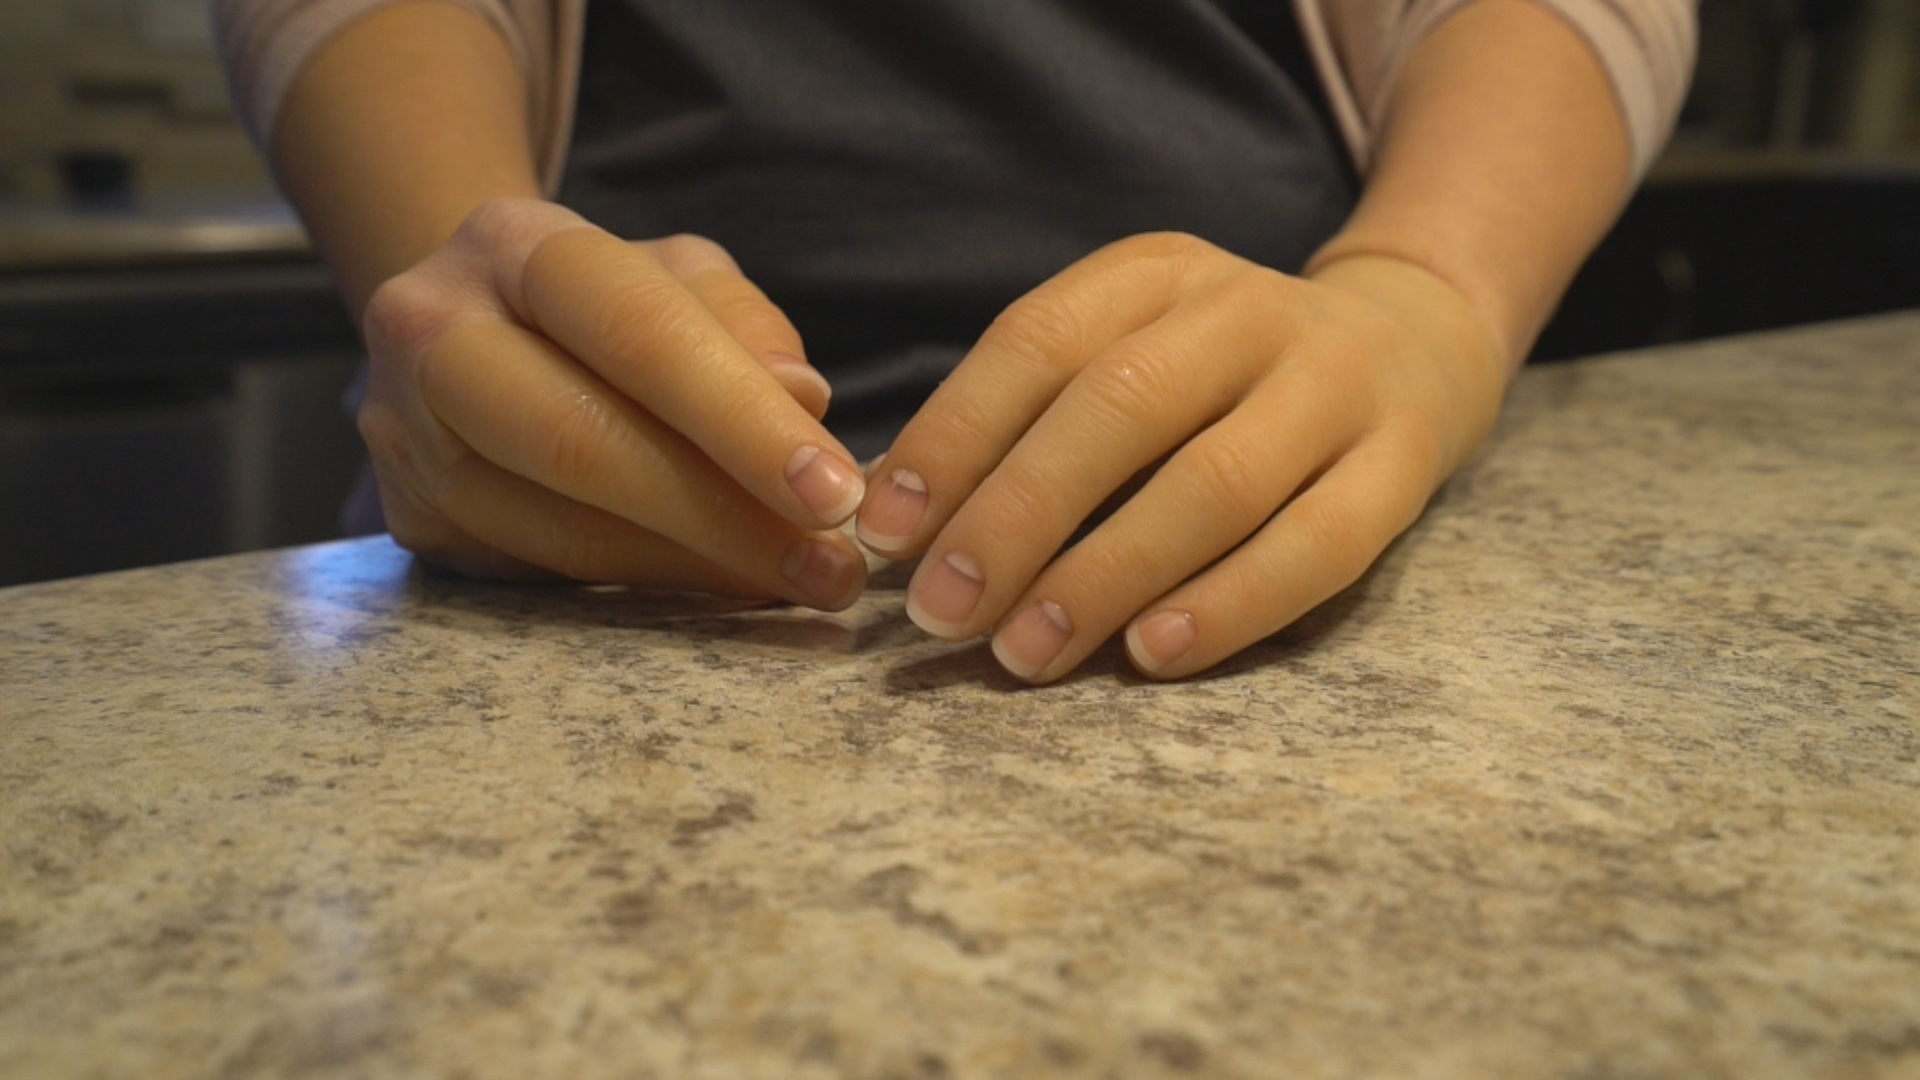 Elaine Dodge-Lynch said there was a lot of artistry involved in crafting her prosthetic hands. (Sherry Vivian/CBC)